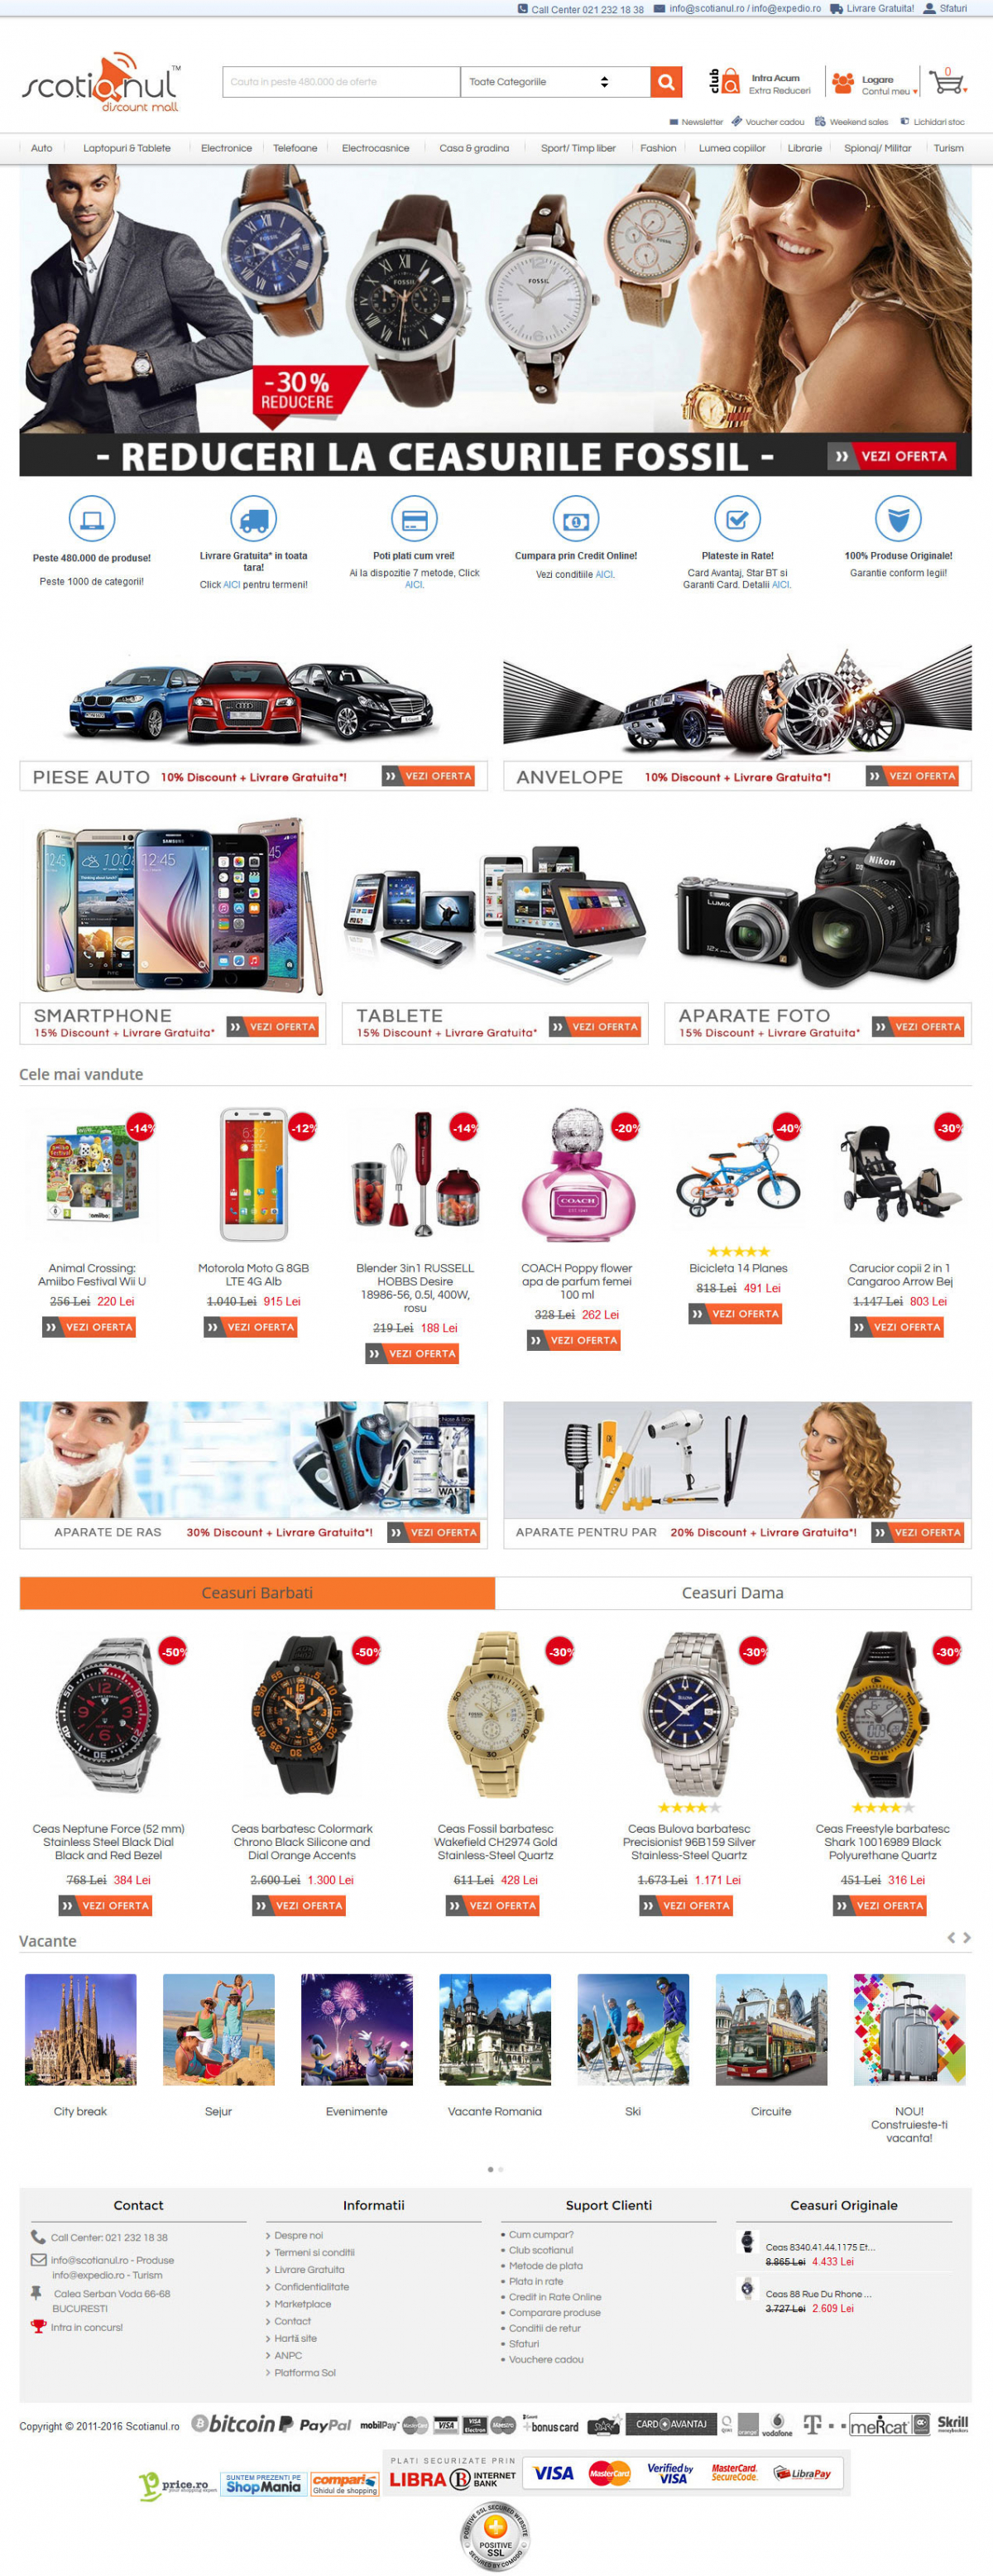 Online platform with vouchers and discounts - MegaPlaza